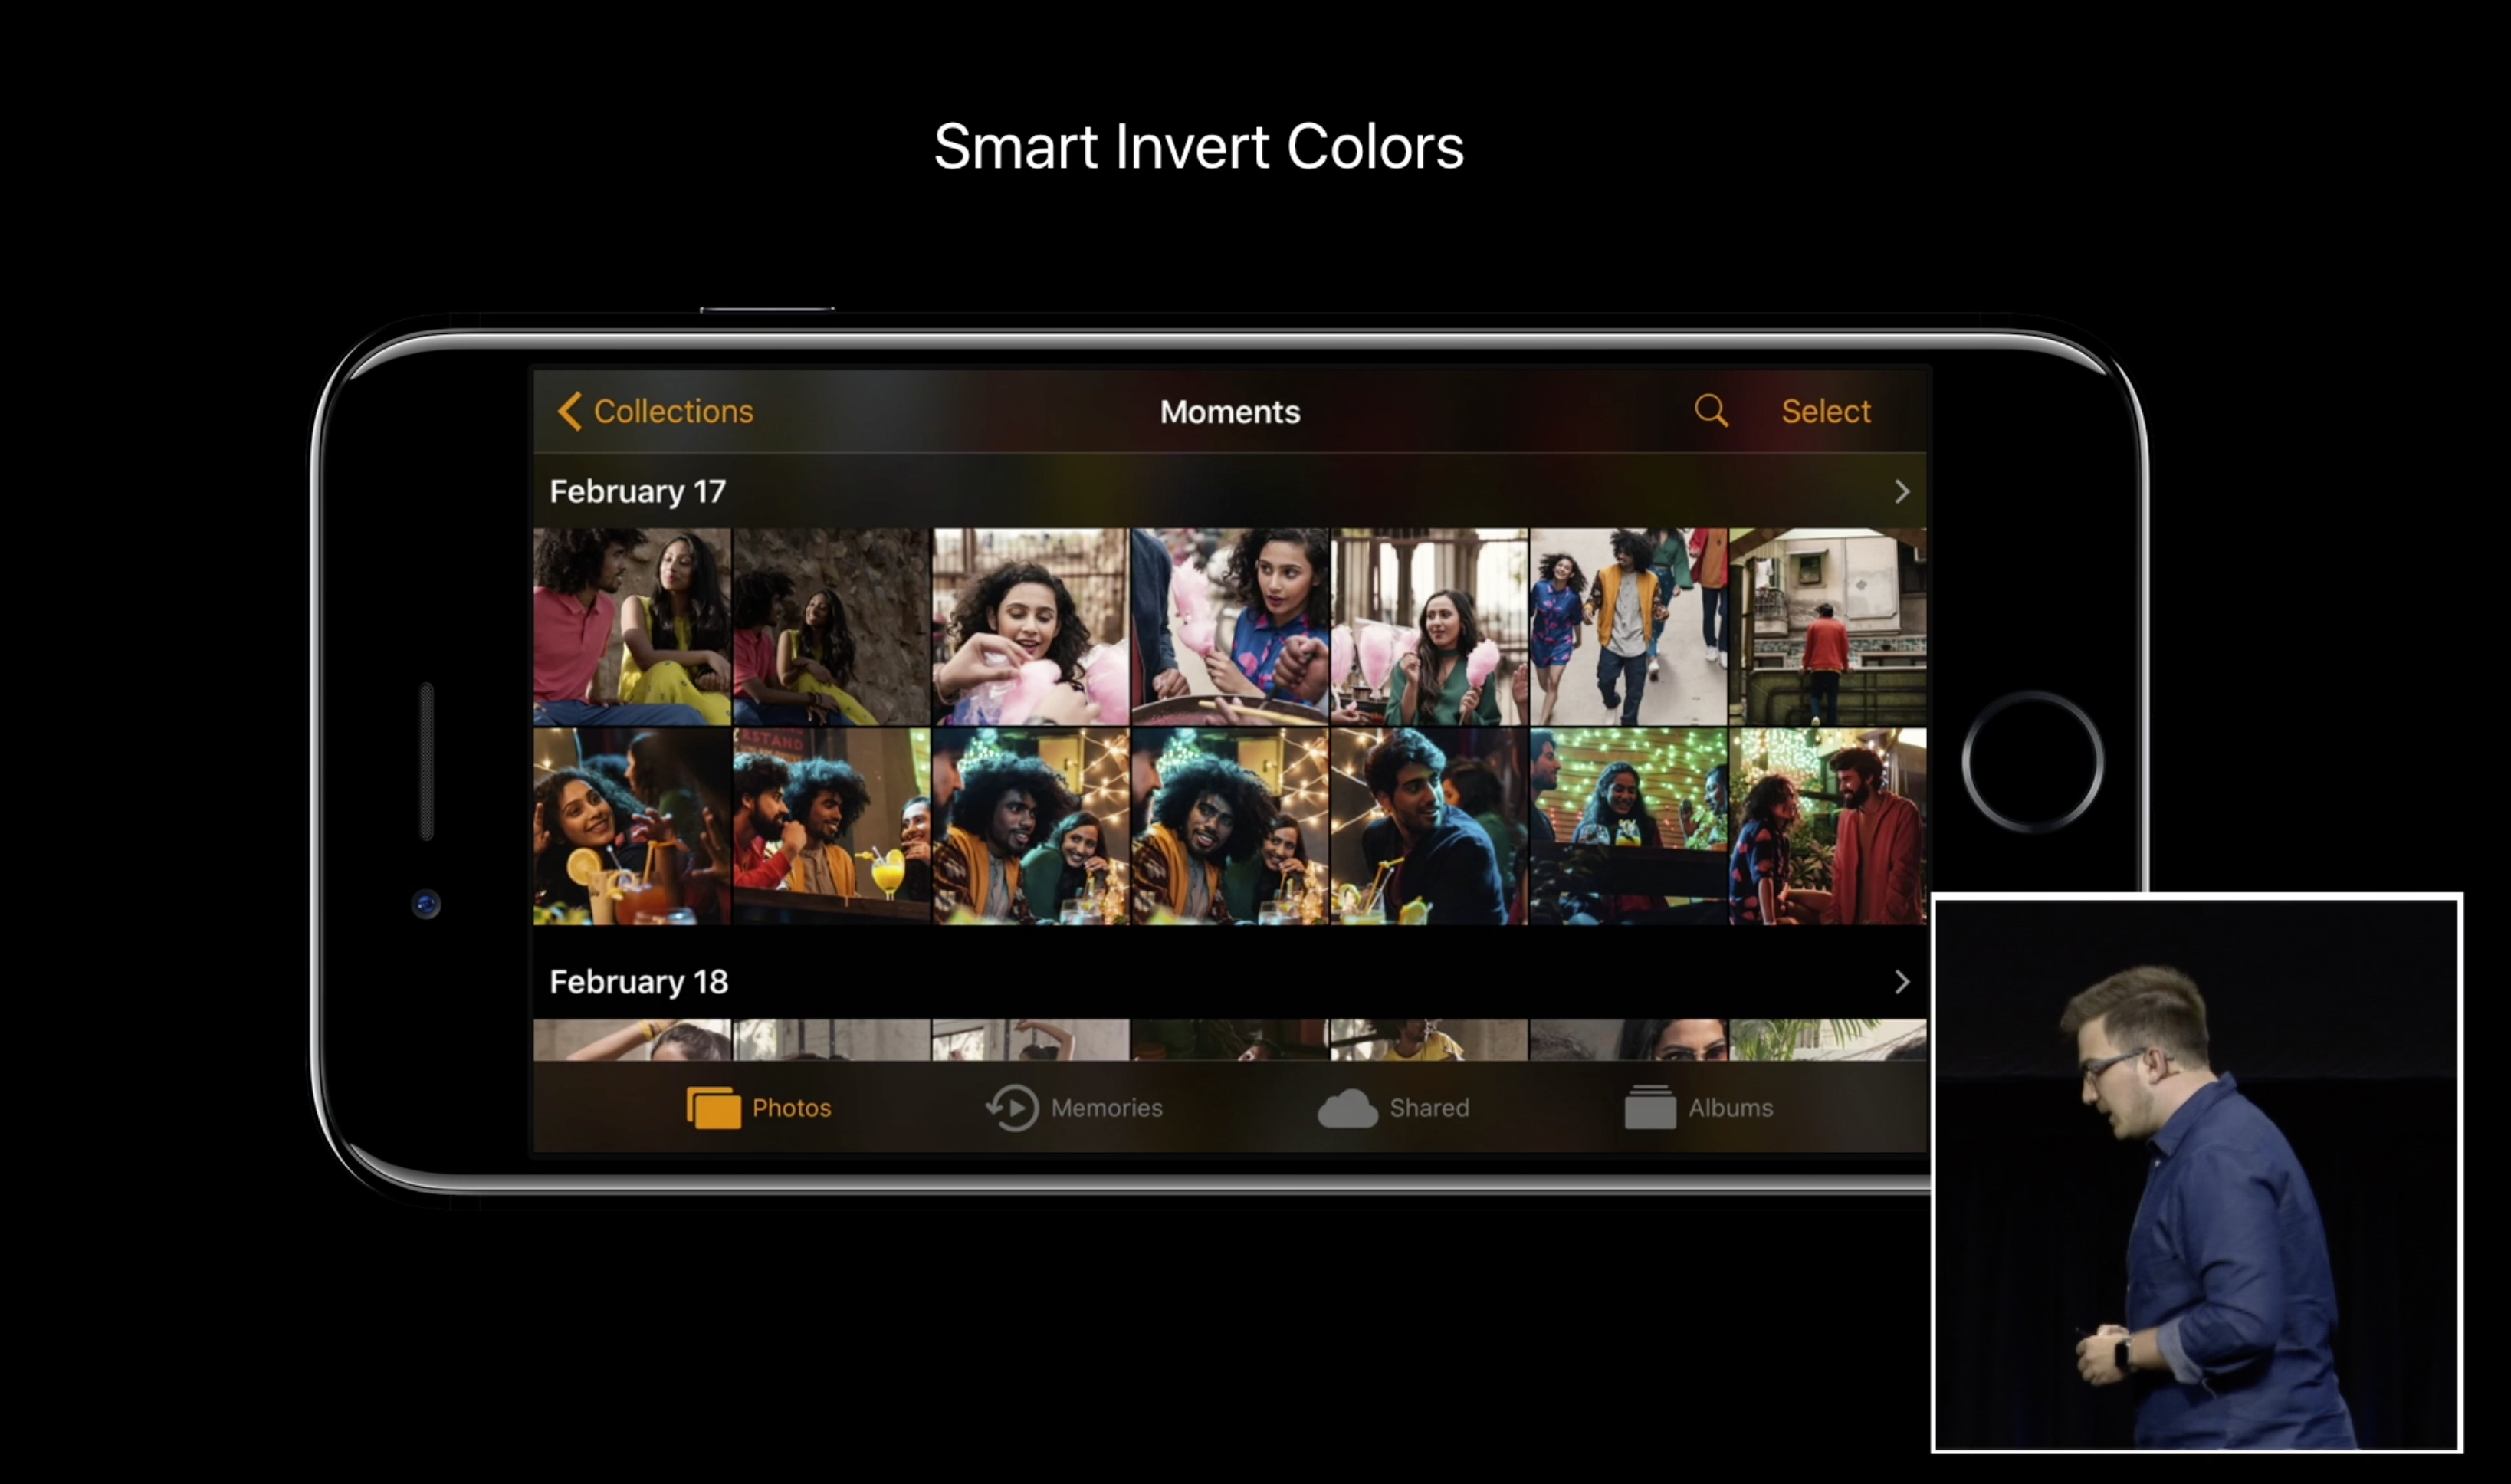 New for Accessibility: 'Smart Invert Colors' in iOS 11